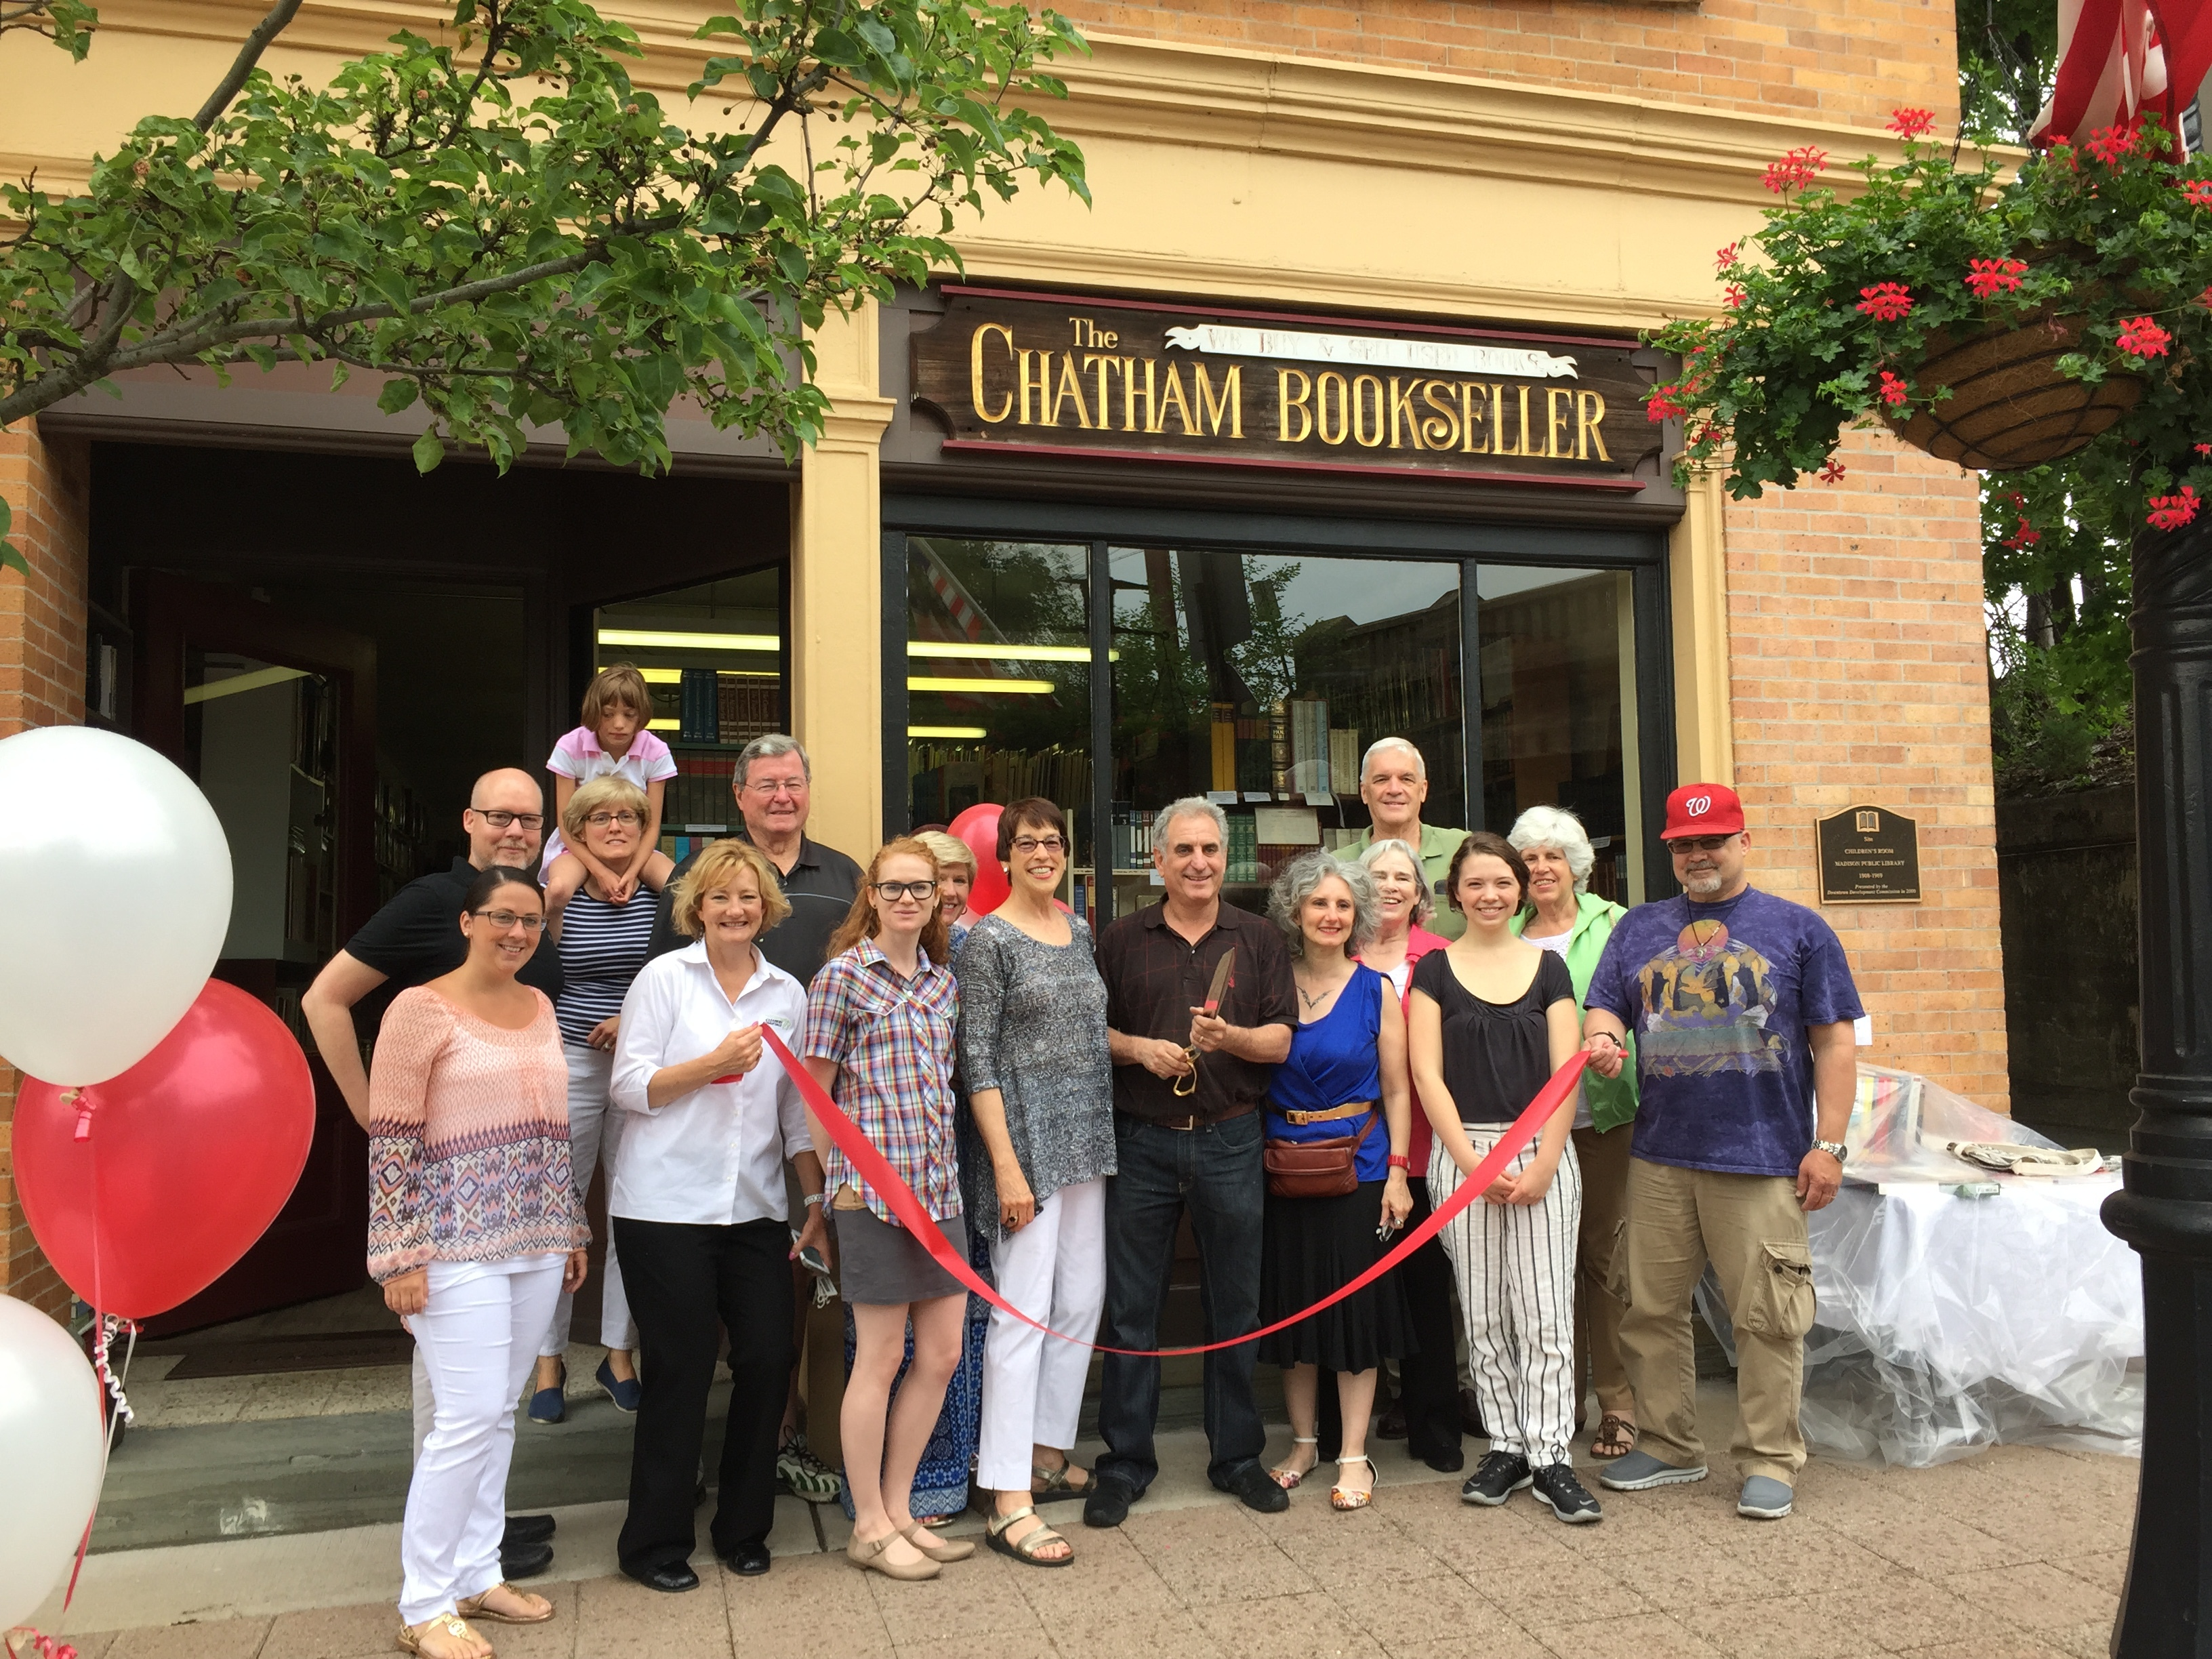 45c28510876ad3be81fe_Chatham_BookSeller_Ribbon_Cutting_June_2105.JPG